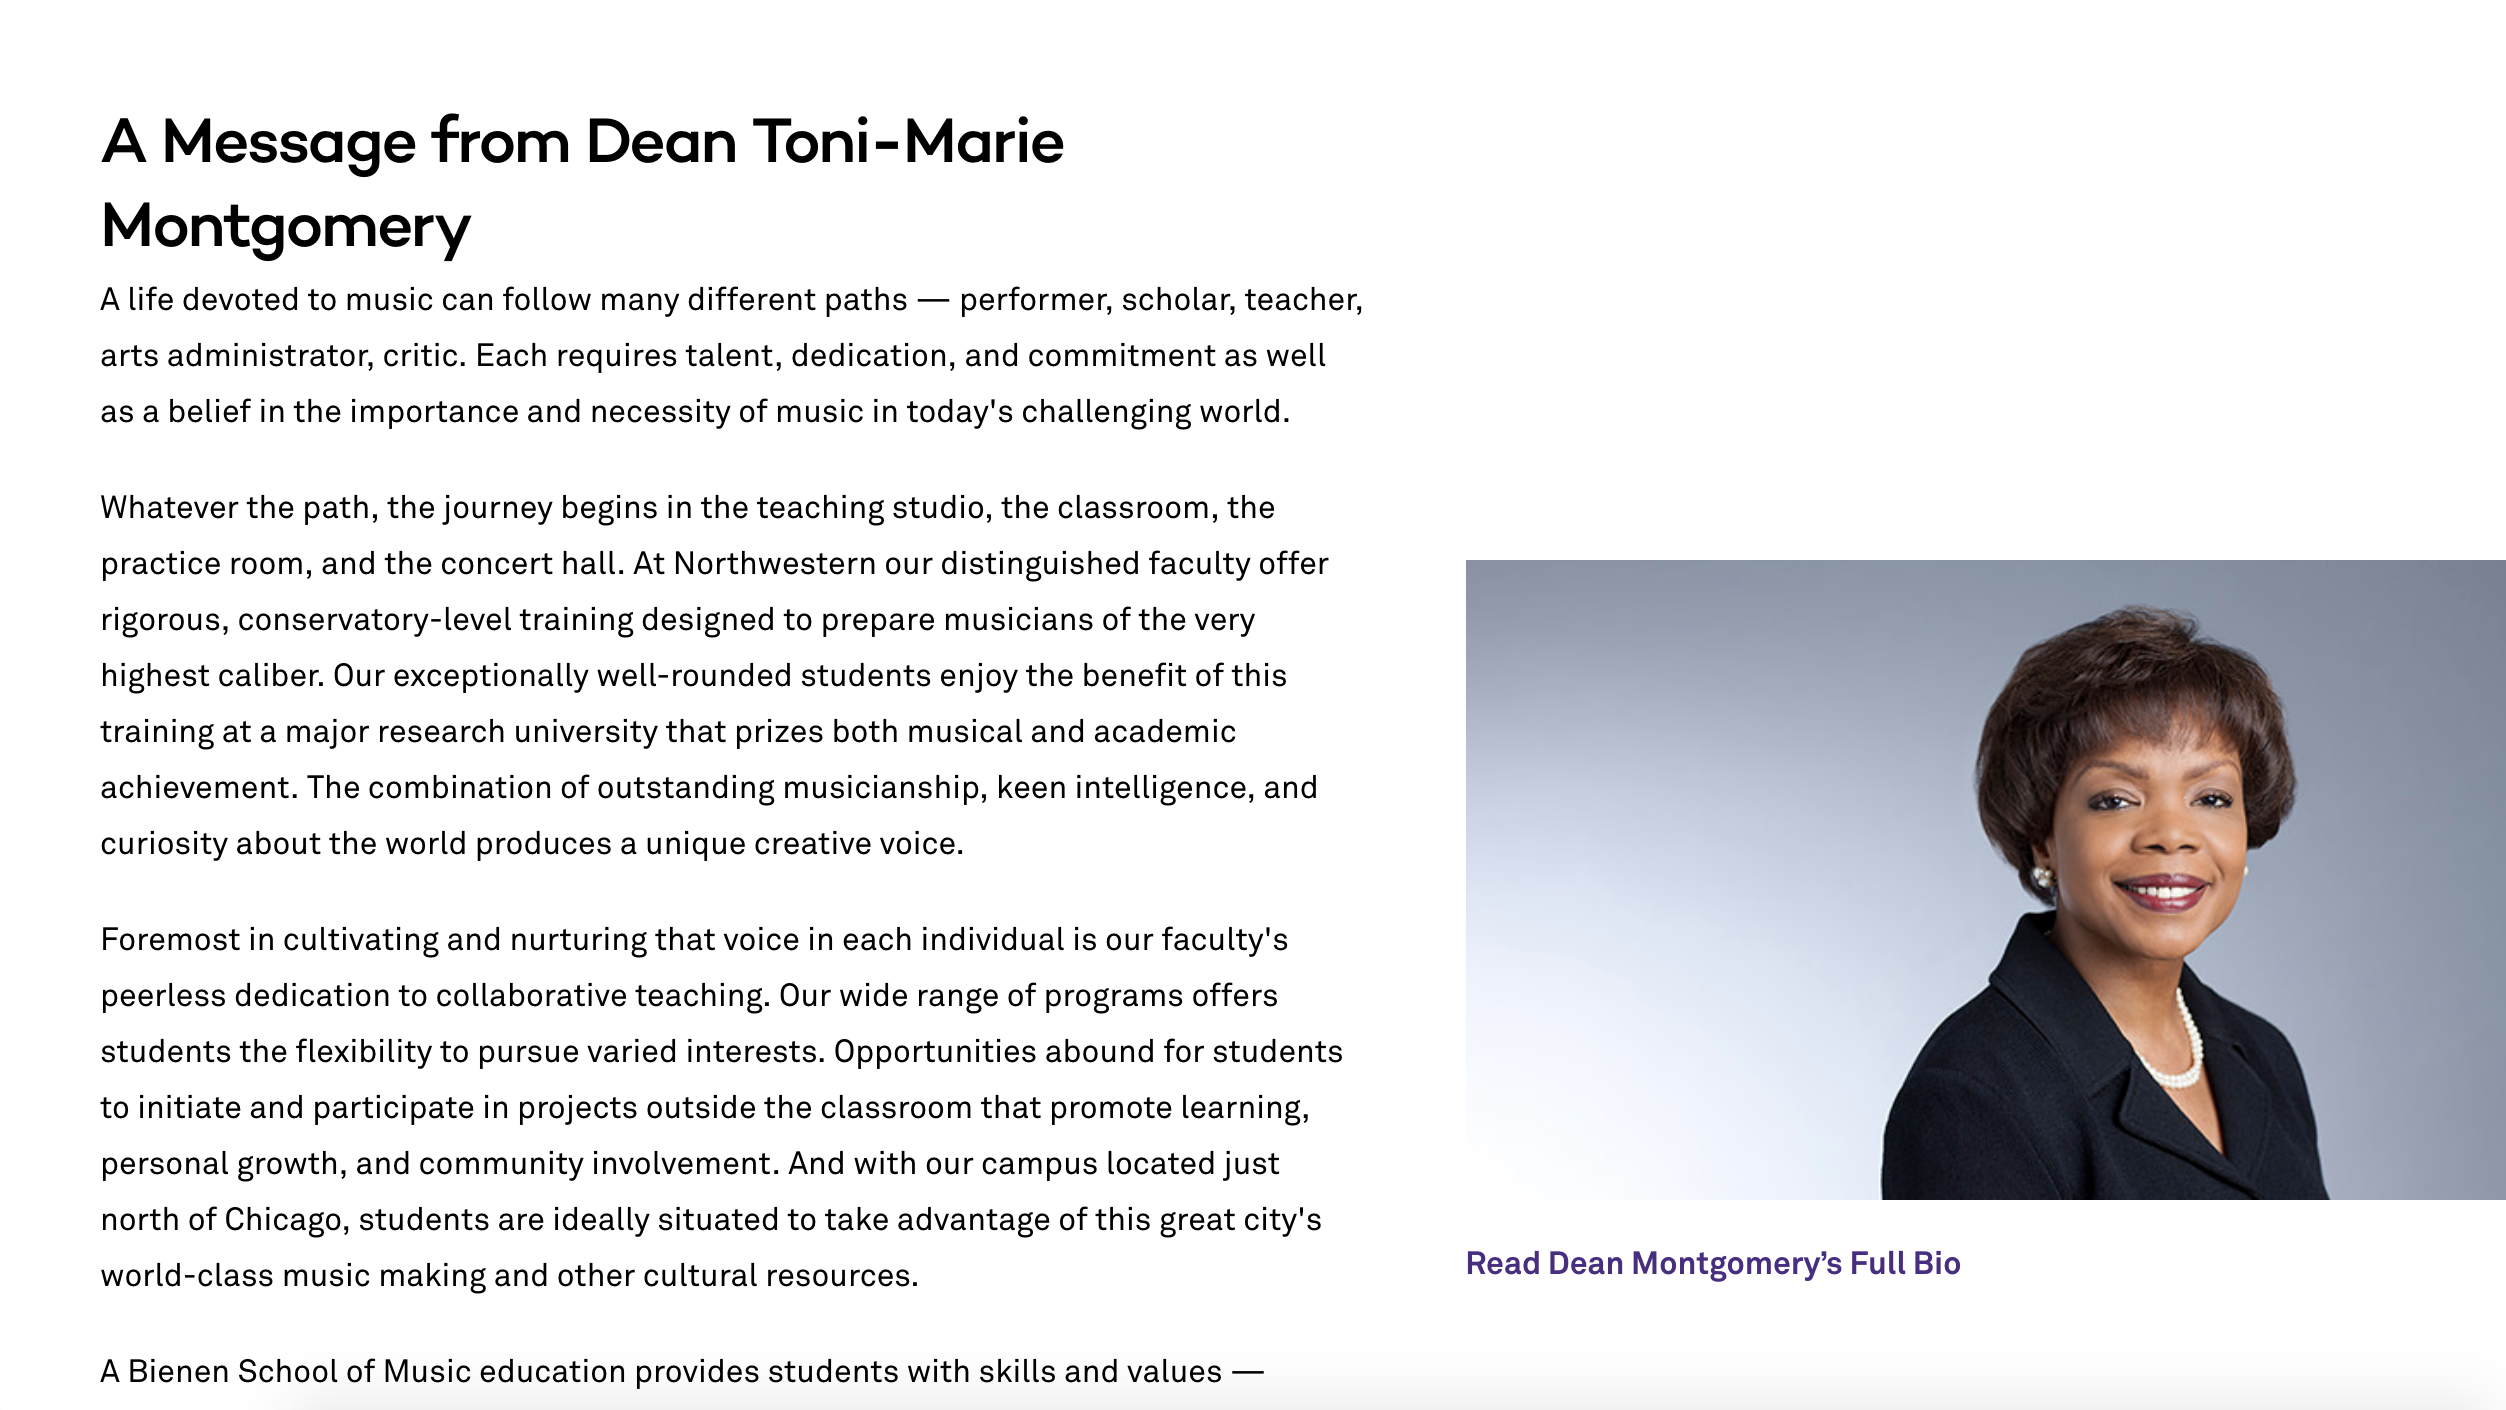 Dean Toni-Marie Montgomery opening letter on About page